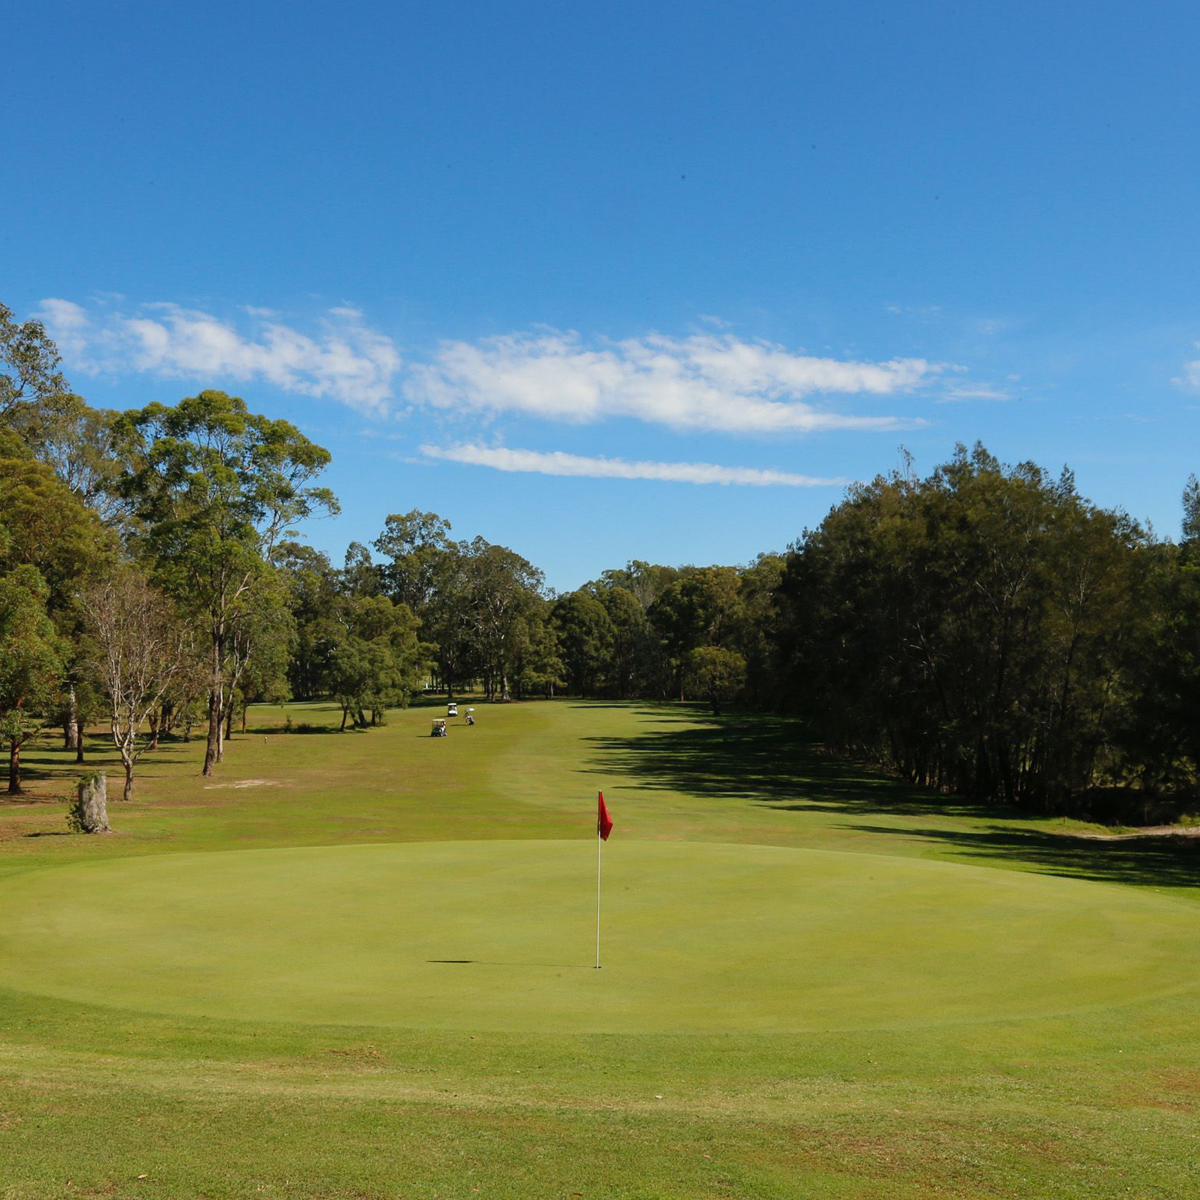 Scenery of the golf course at Grafton Golf Club